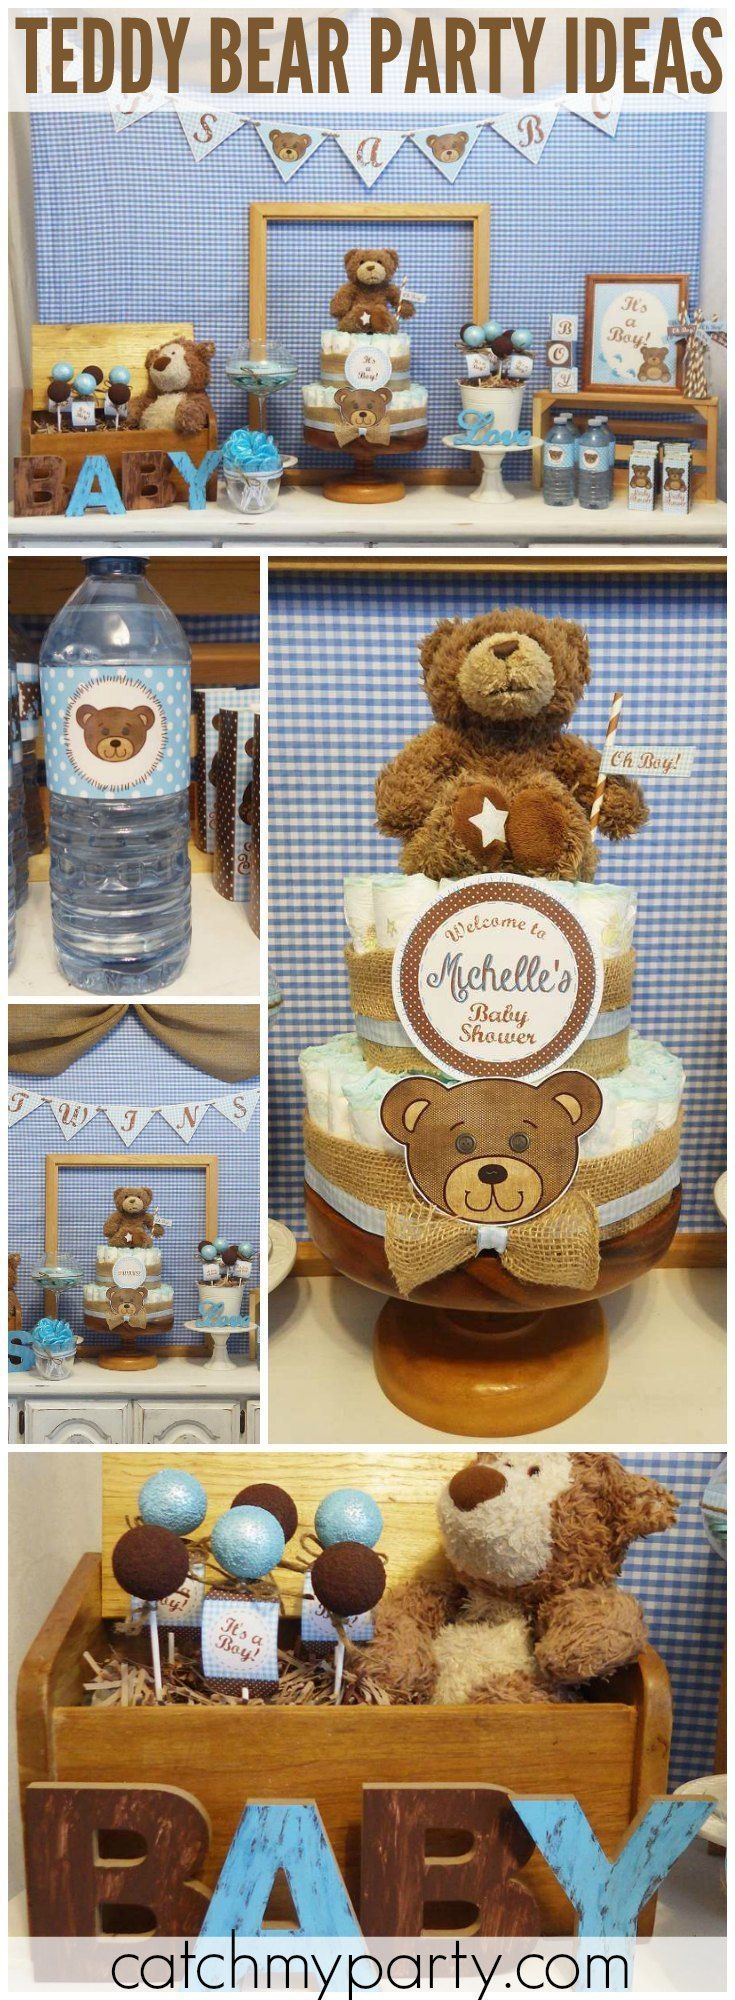 Most baby showers are hosted right around lunch time which can leave - How Adorable Is This Teddy Bear Baby Shower In Blue And Brown See More Party